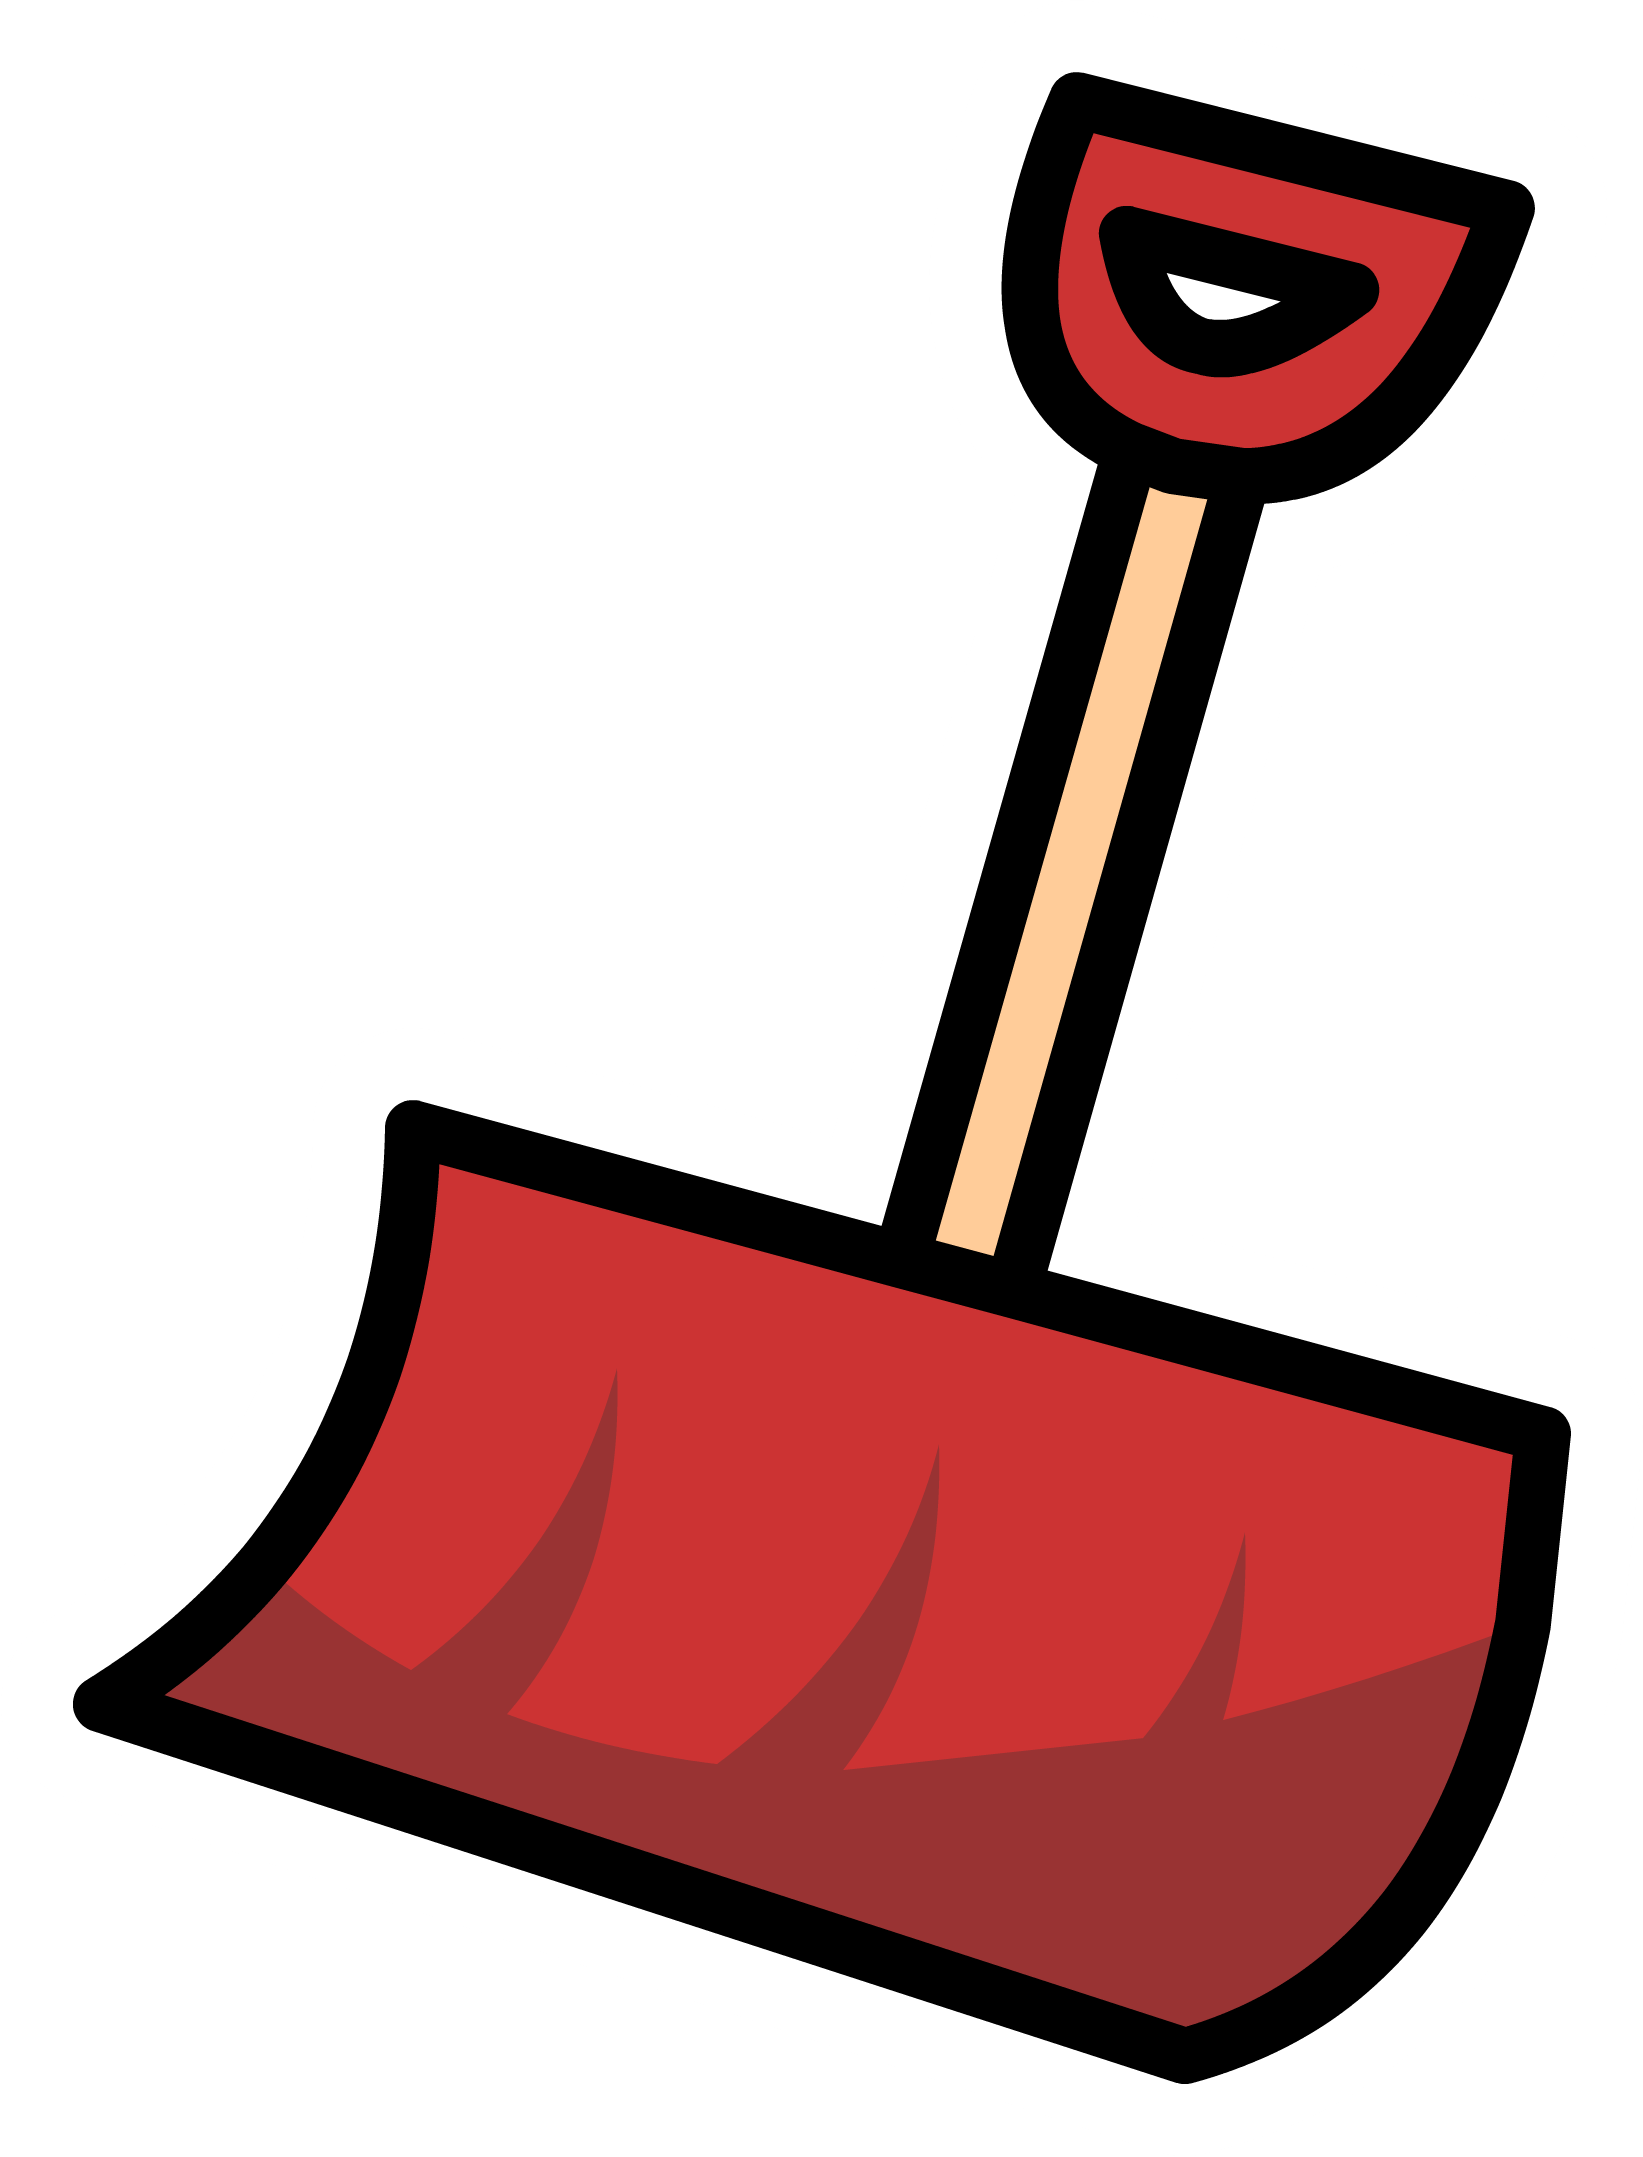 Free Snow Shovel Pictures, Download Free Clip Art, Free Clip ... image transparent stock